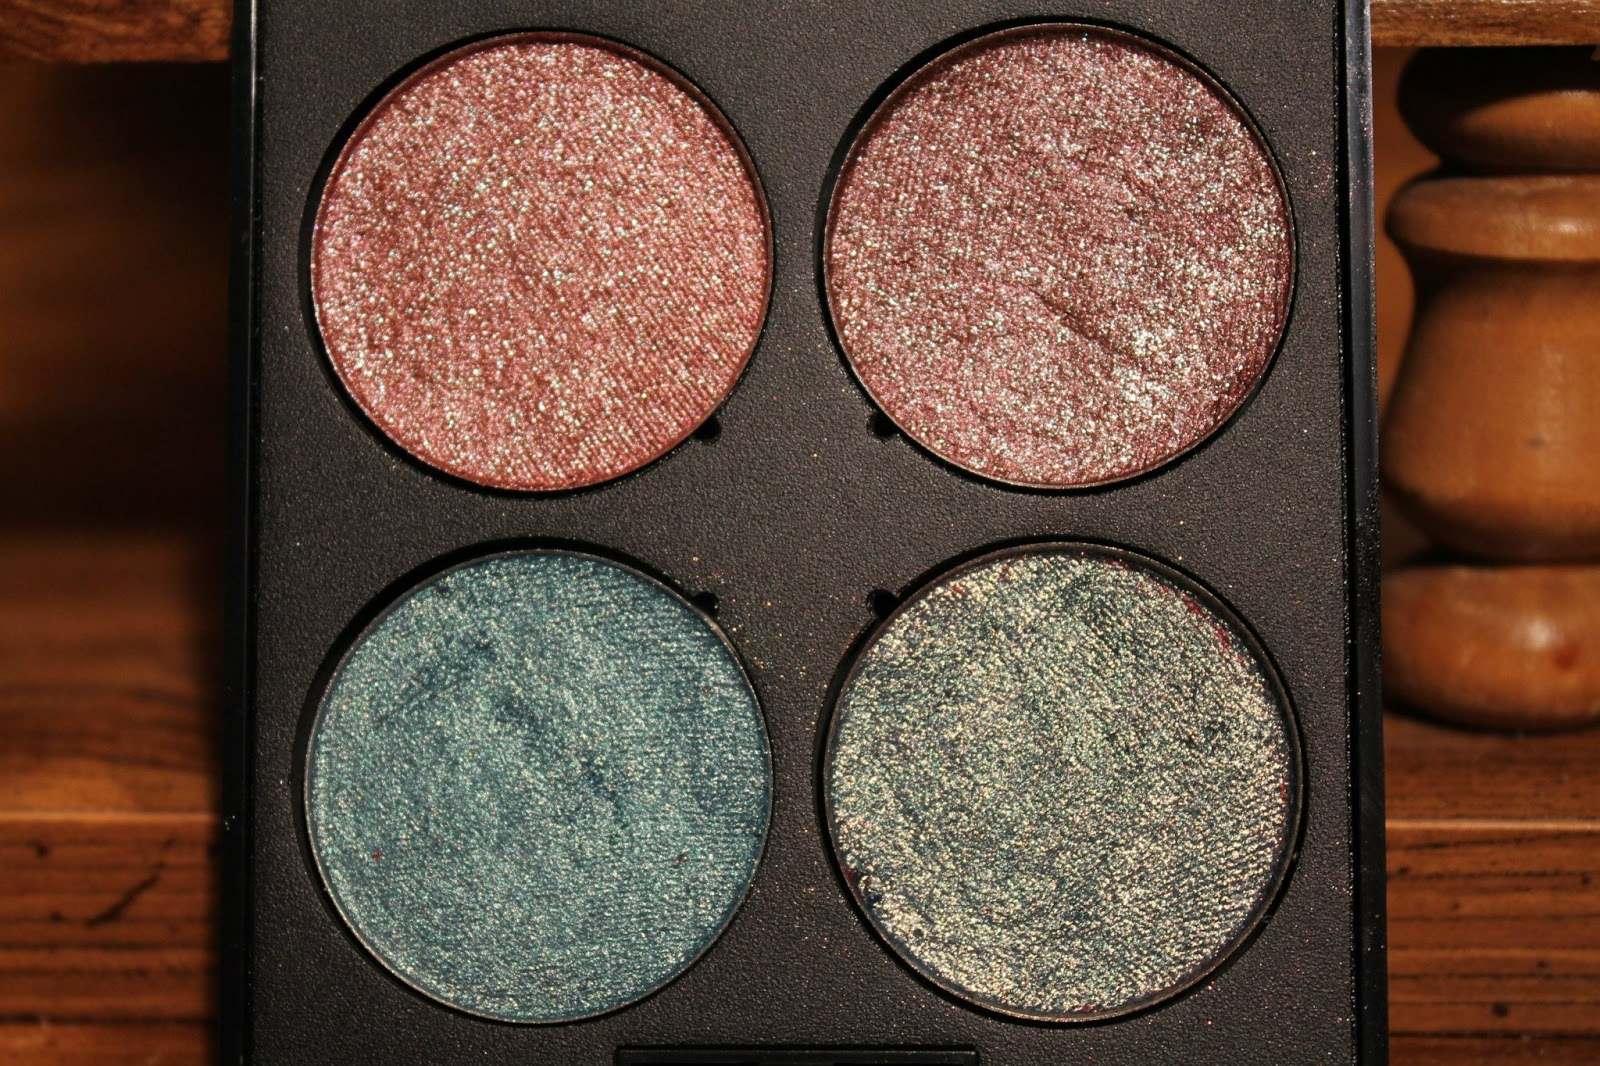 Pigment, Mica, and More!